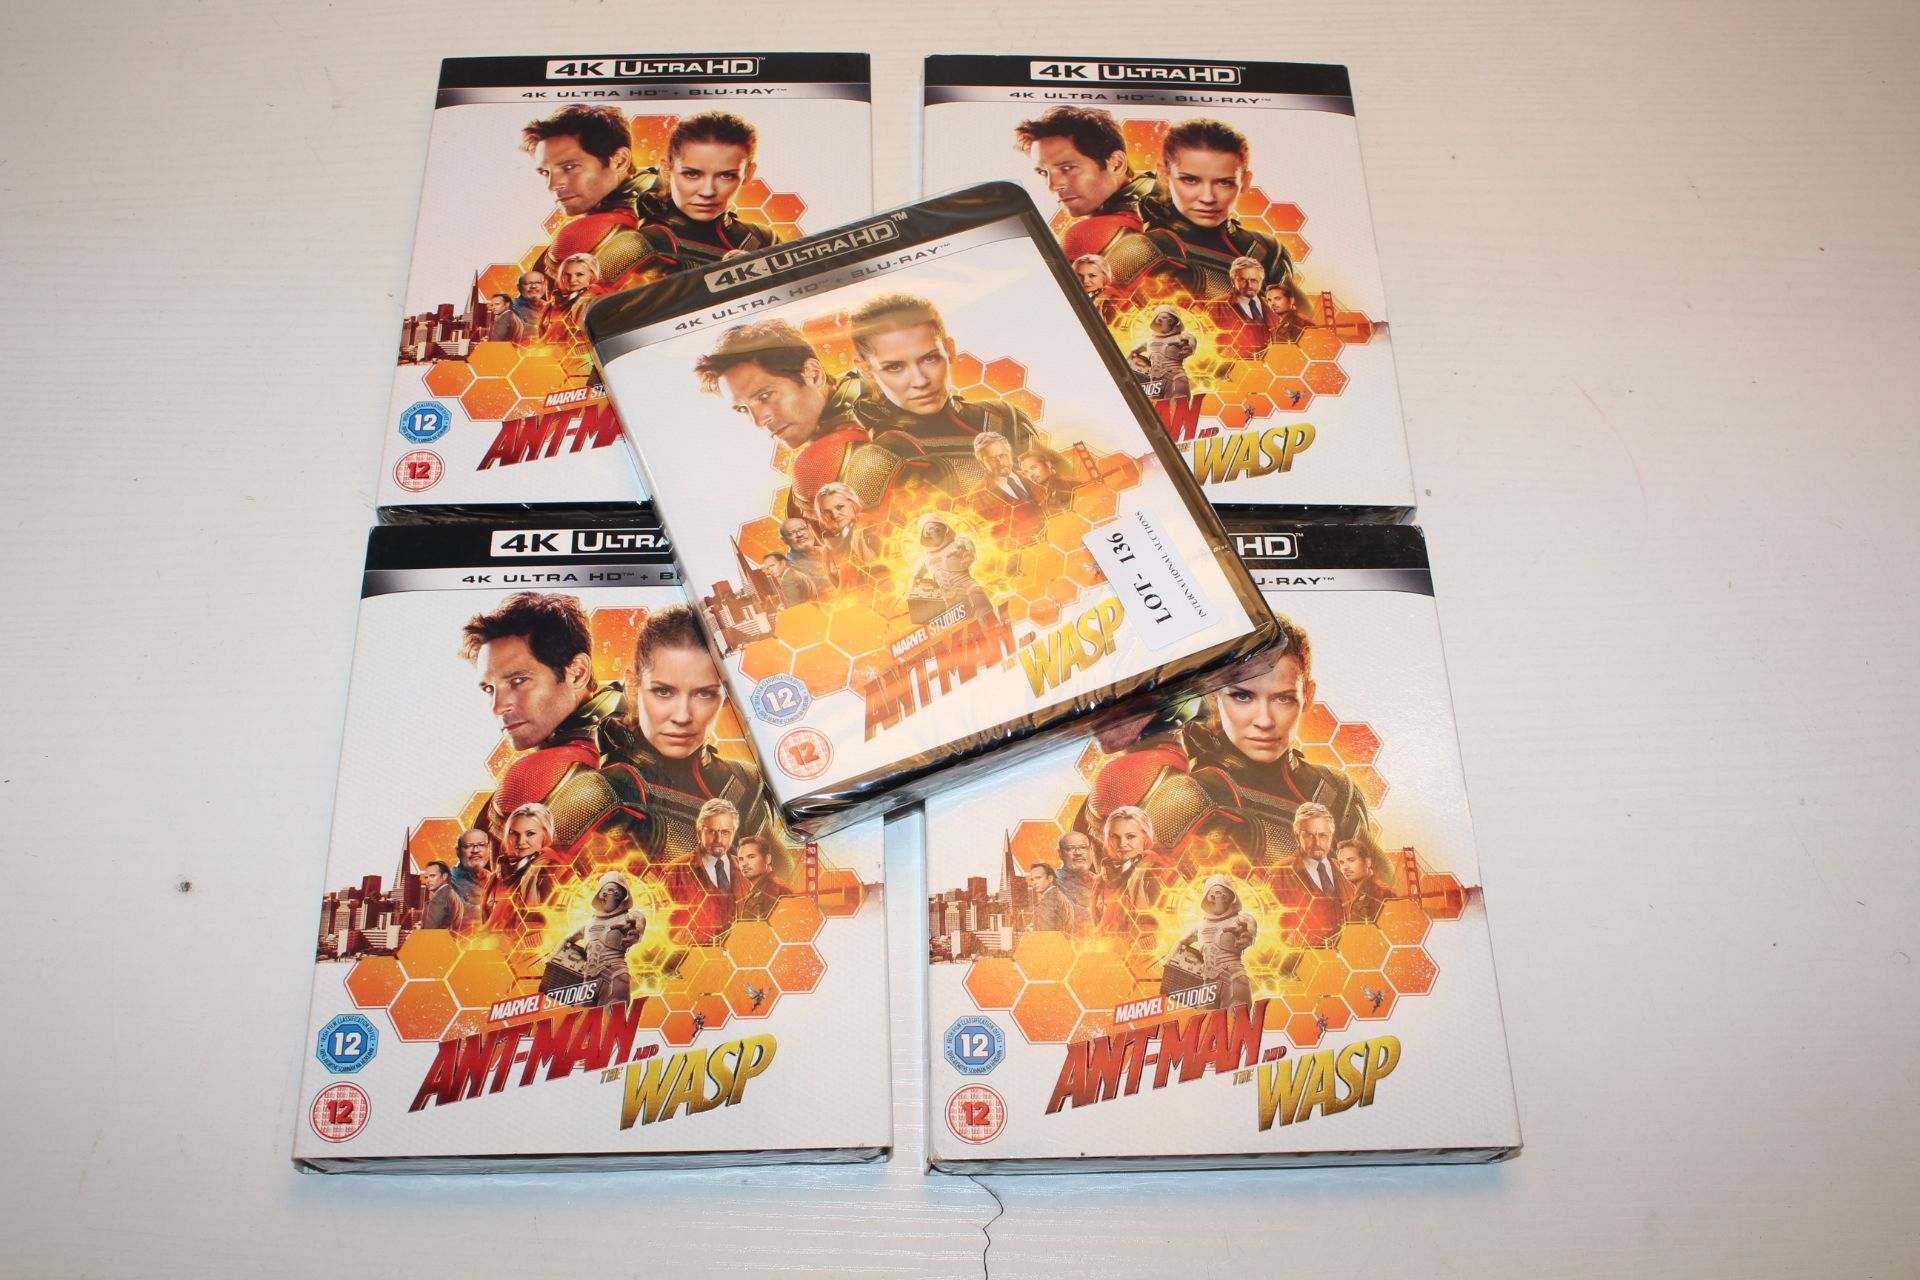 5X BOXED SEALED MARVEL STUDIOS ANT MAN AND THE WASP - 4K ULTRA HD + BLU RAY DVD DISCS Condition